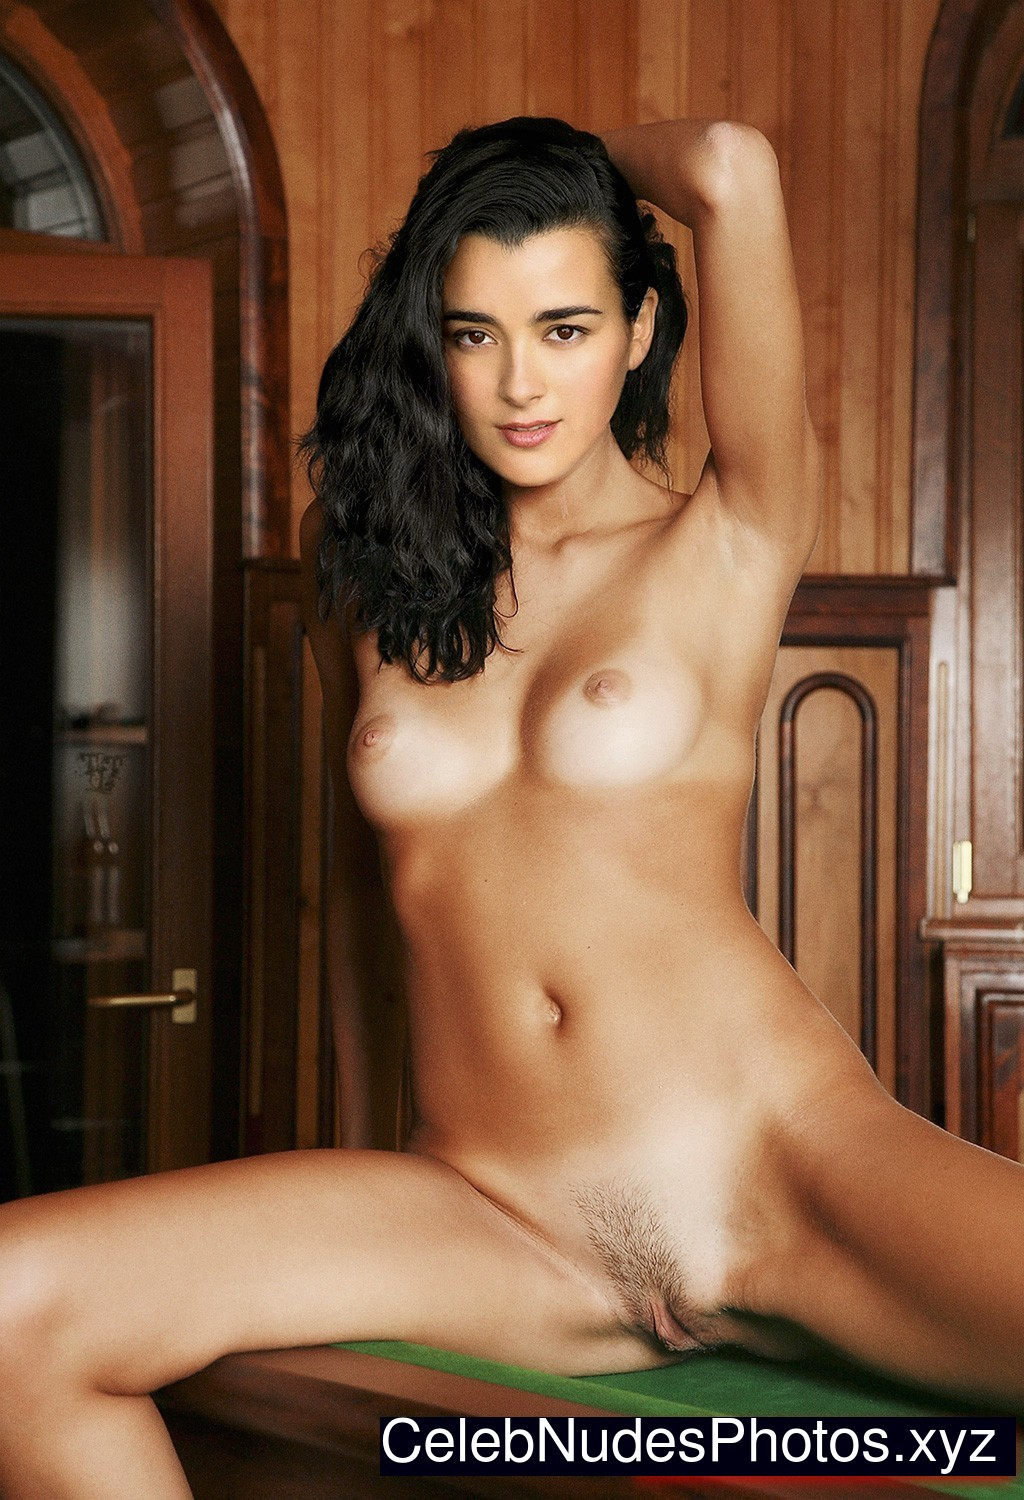 Pity, that Fake cote de pablo pictures consider